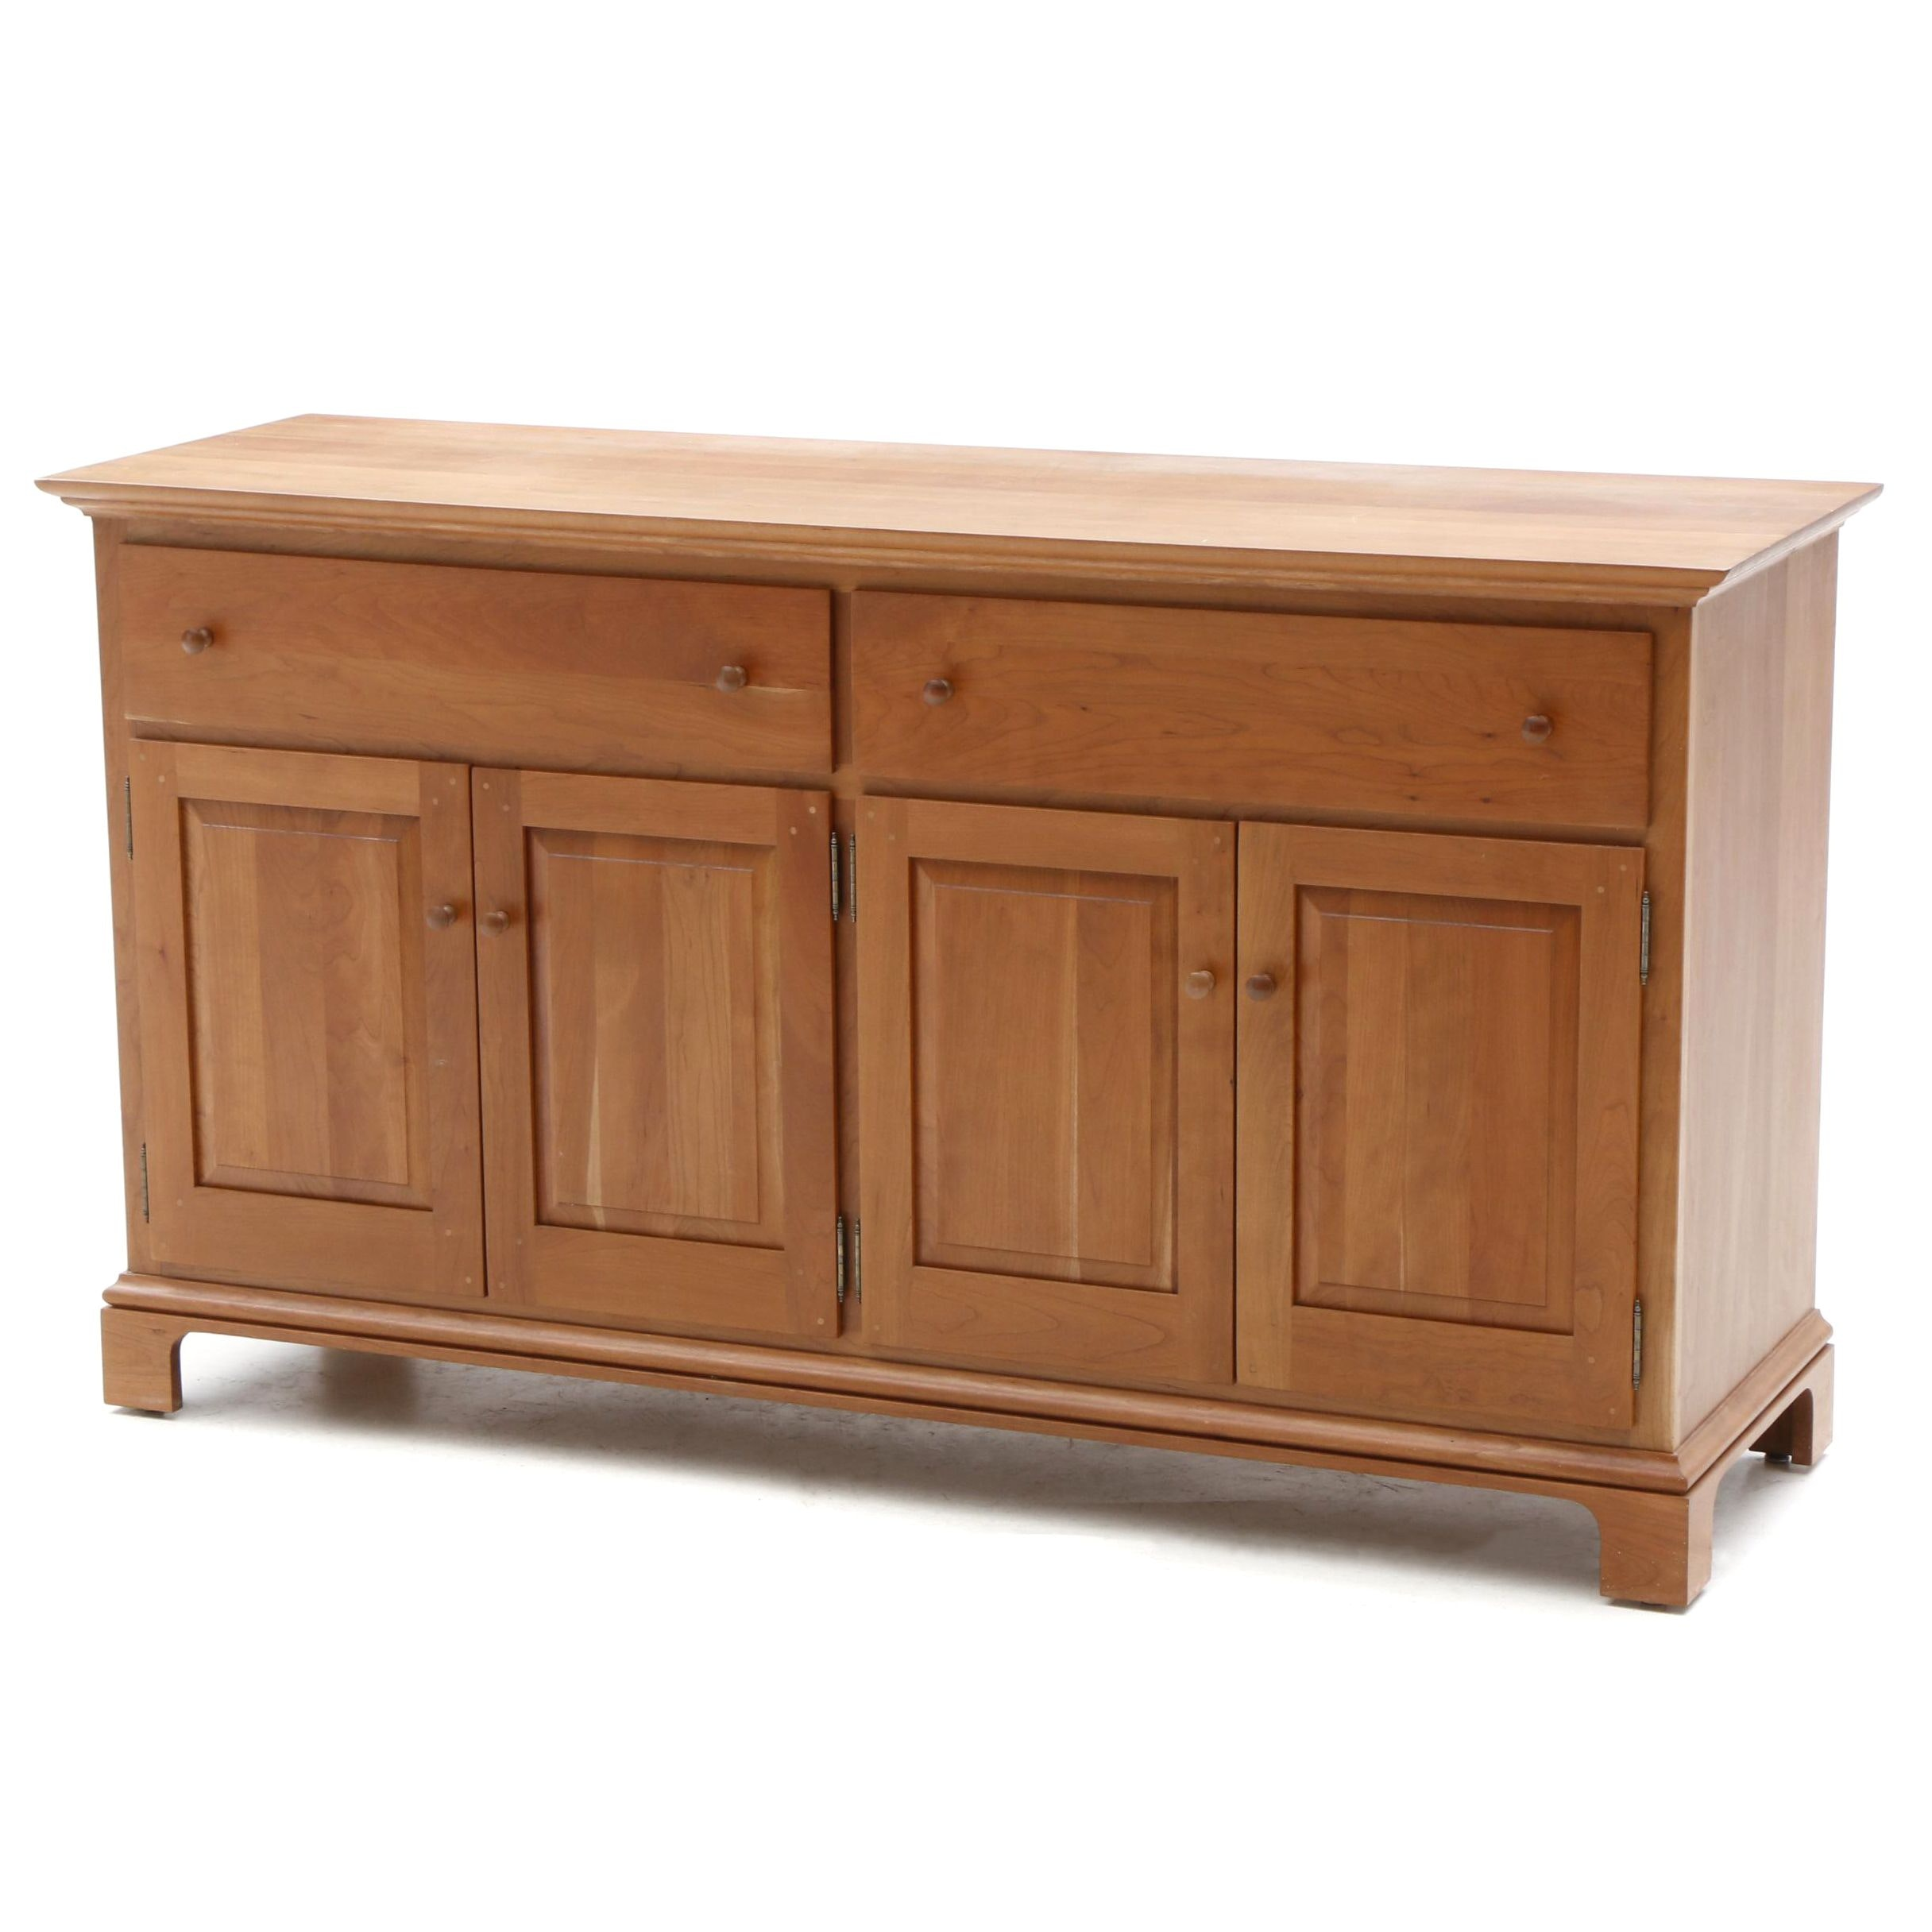 Contemporary Shaker Style Cherry Credenza by Arhaus